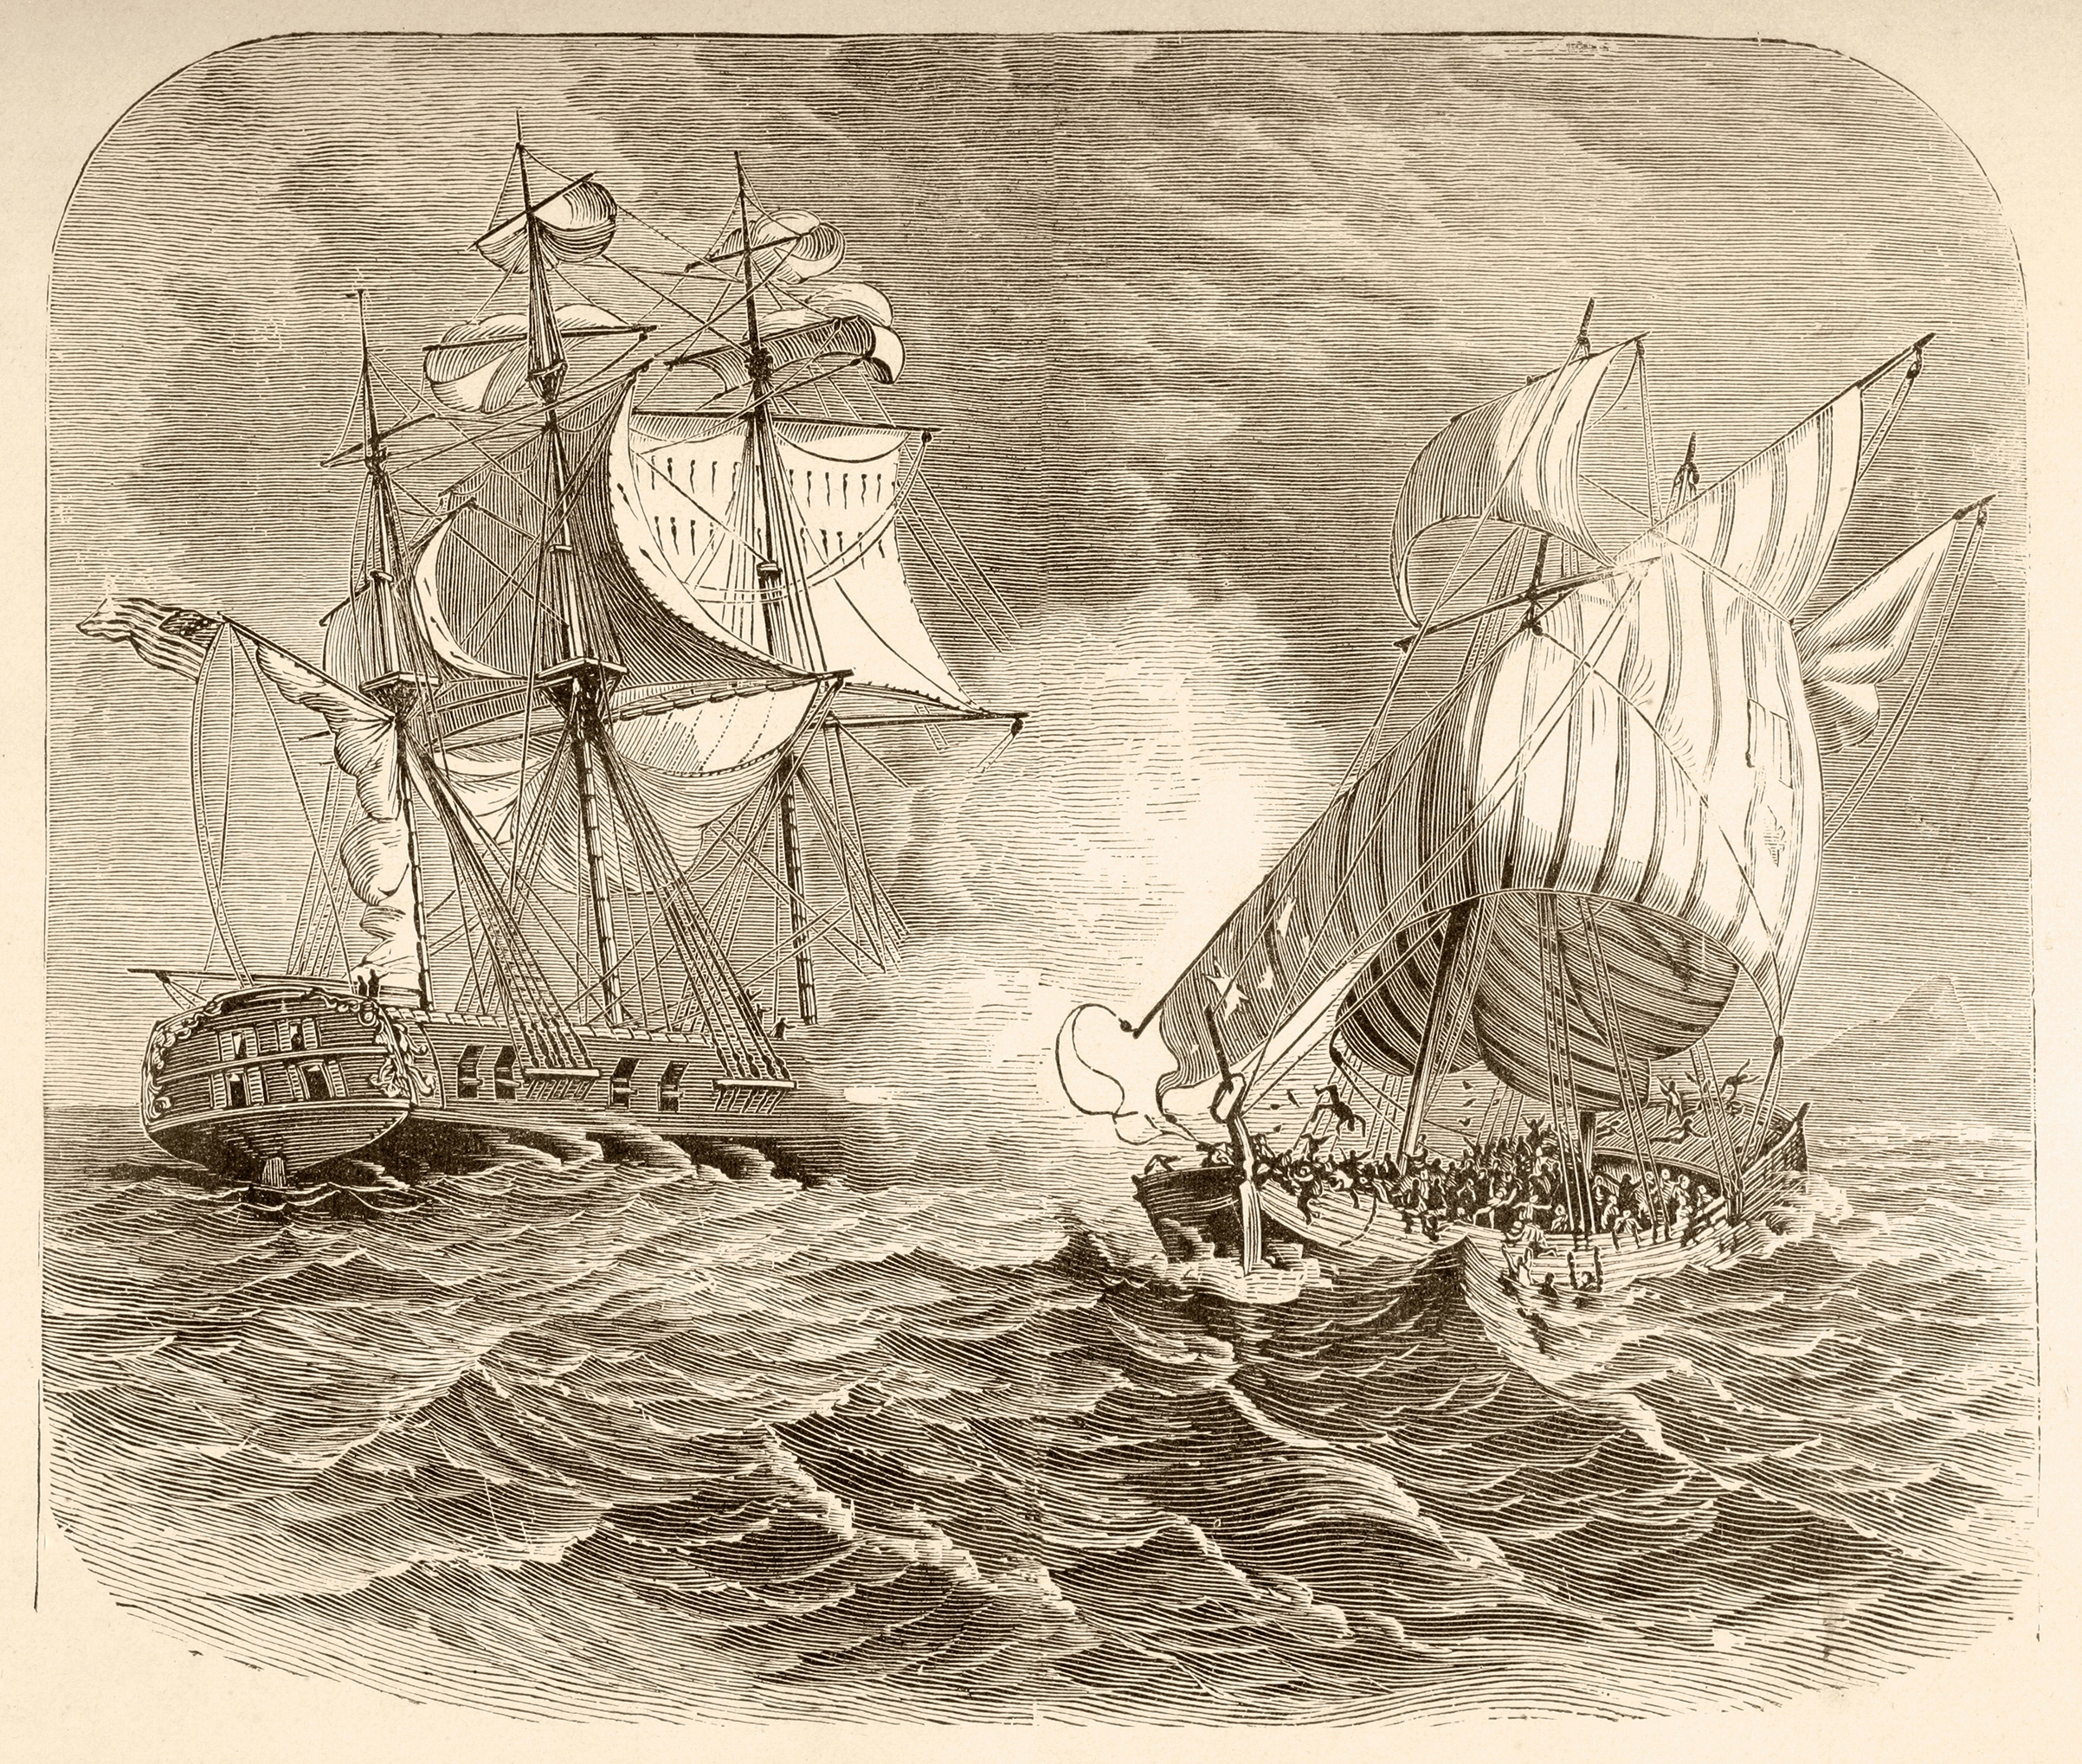 An American Navy ship captures an Algerian pirate ship off the Barbary Coast during the First Barbary War 1801 to 1805.